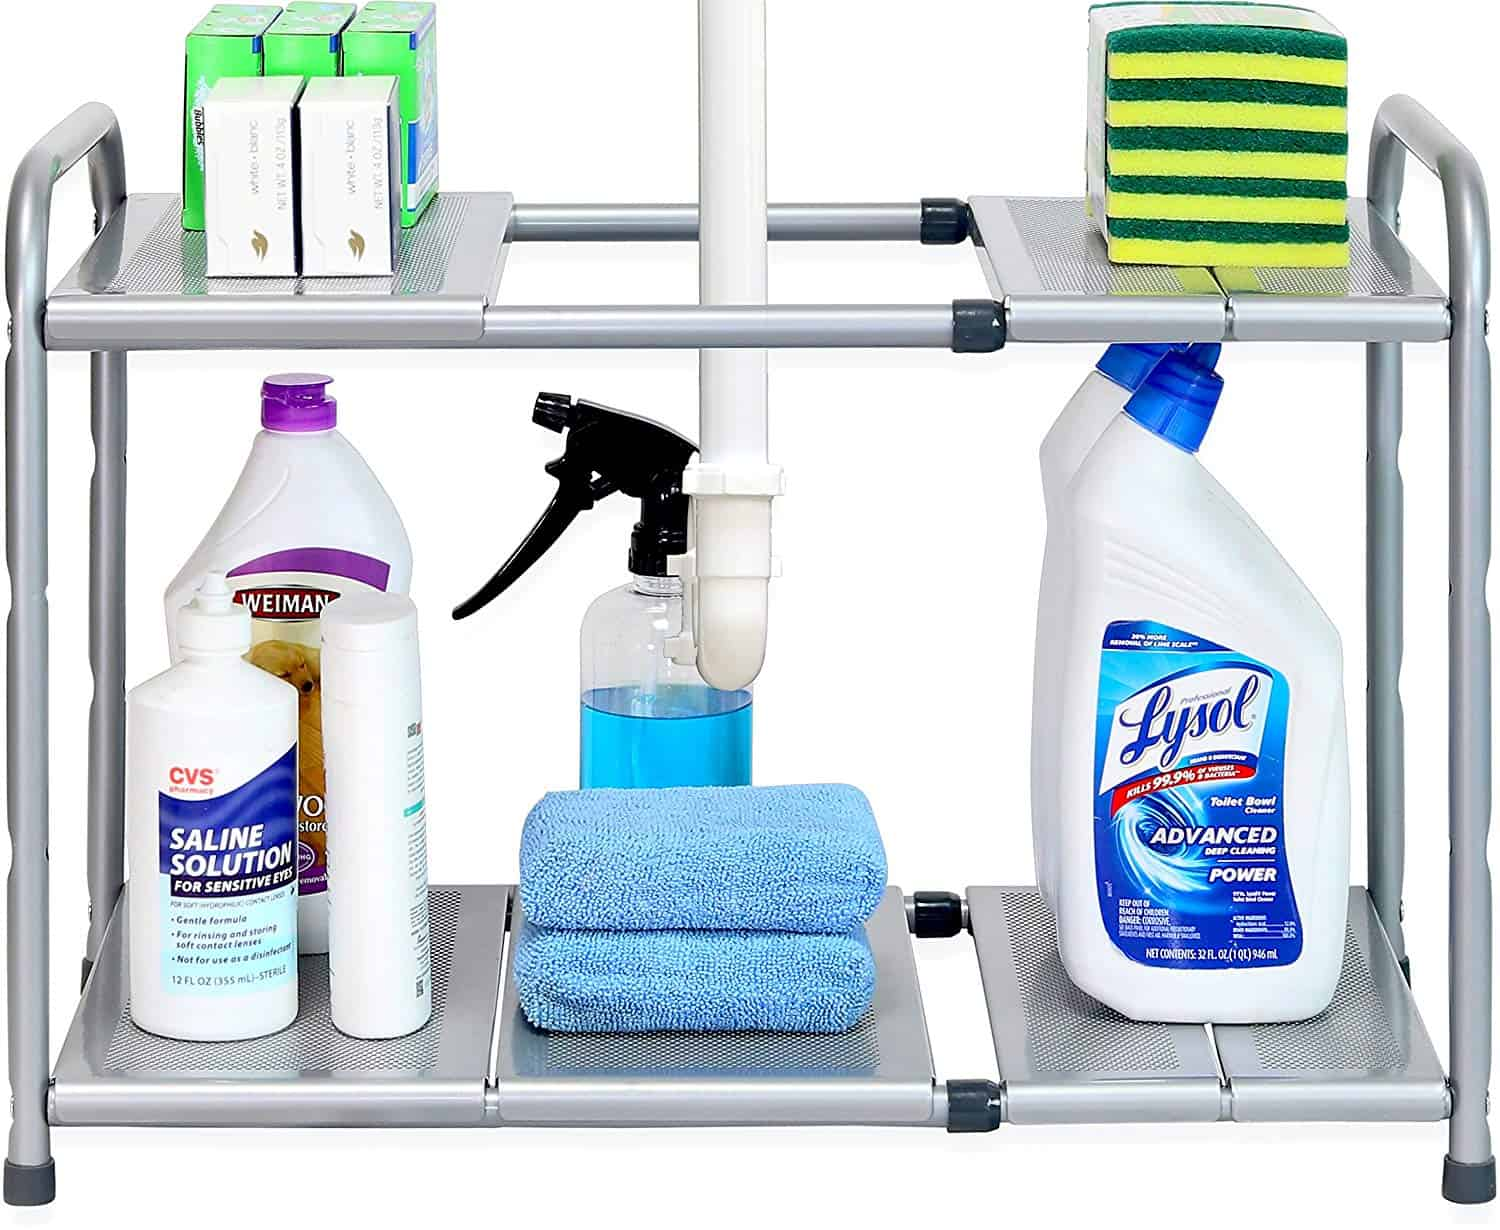 Under the sink kitchen organizer for less than $20